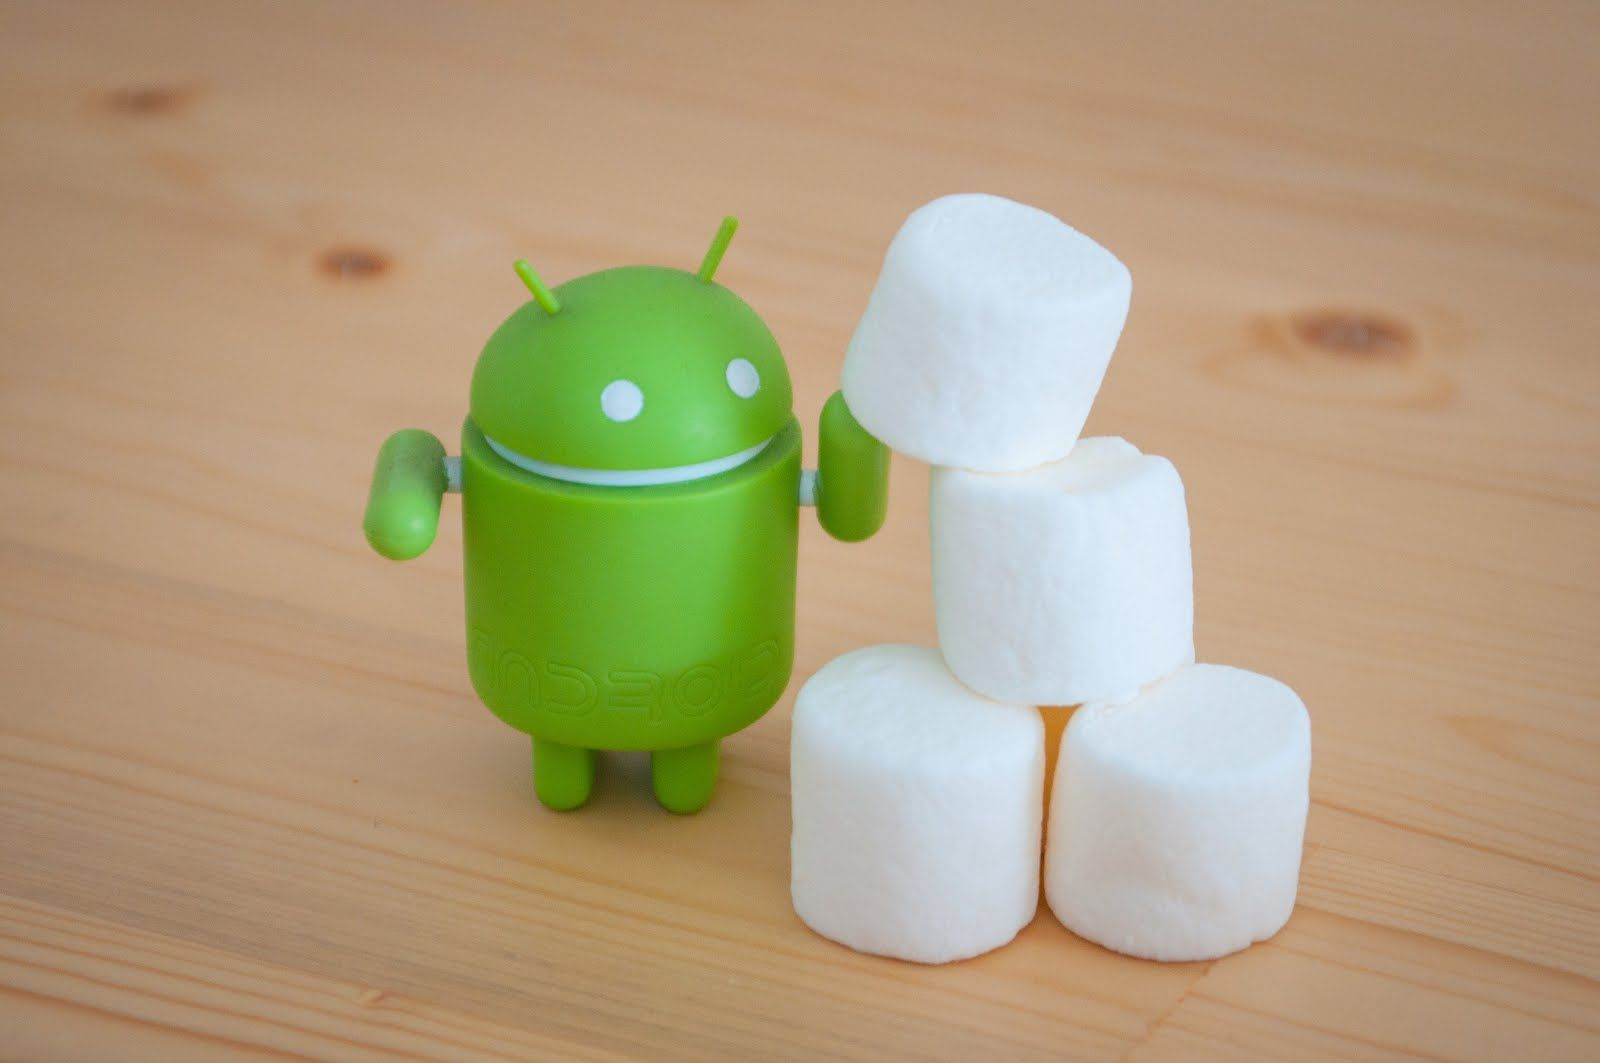 It's meant to teach Android app building to those with